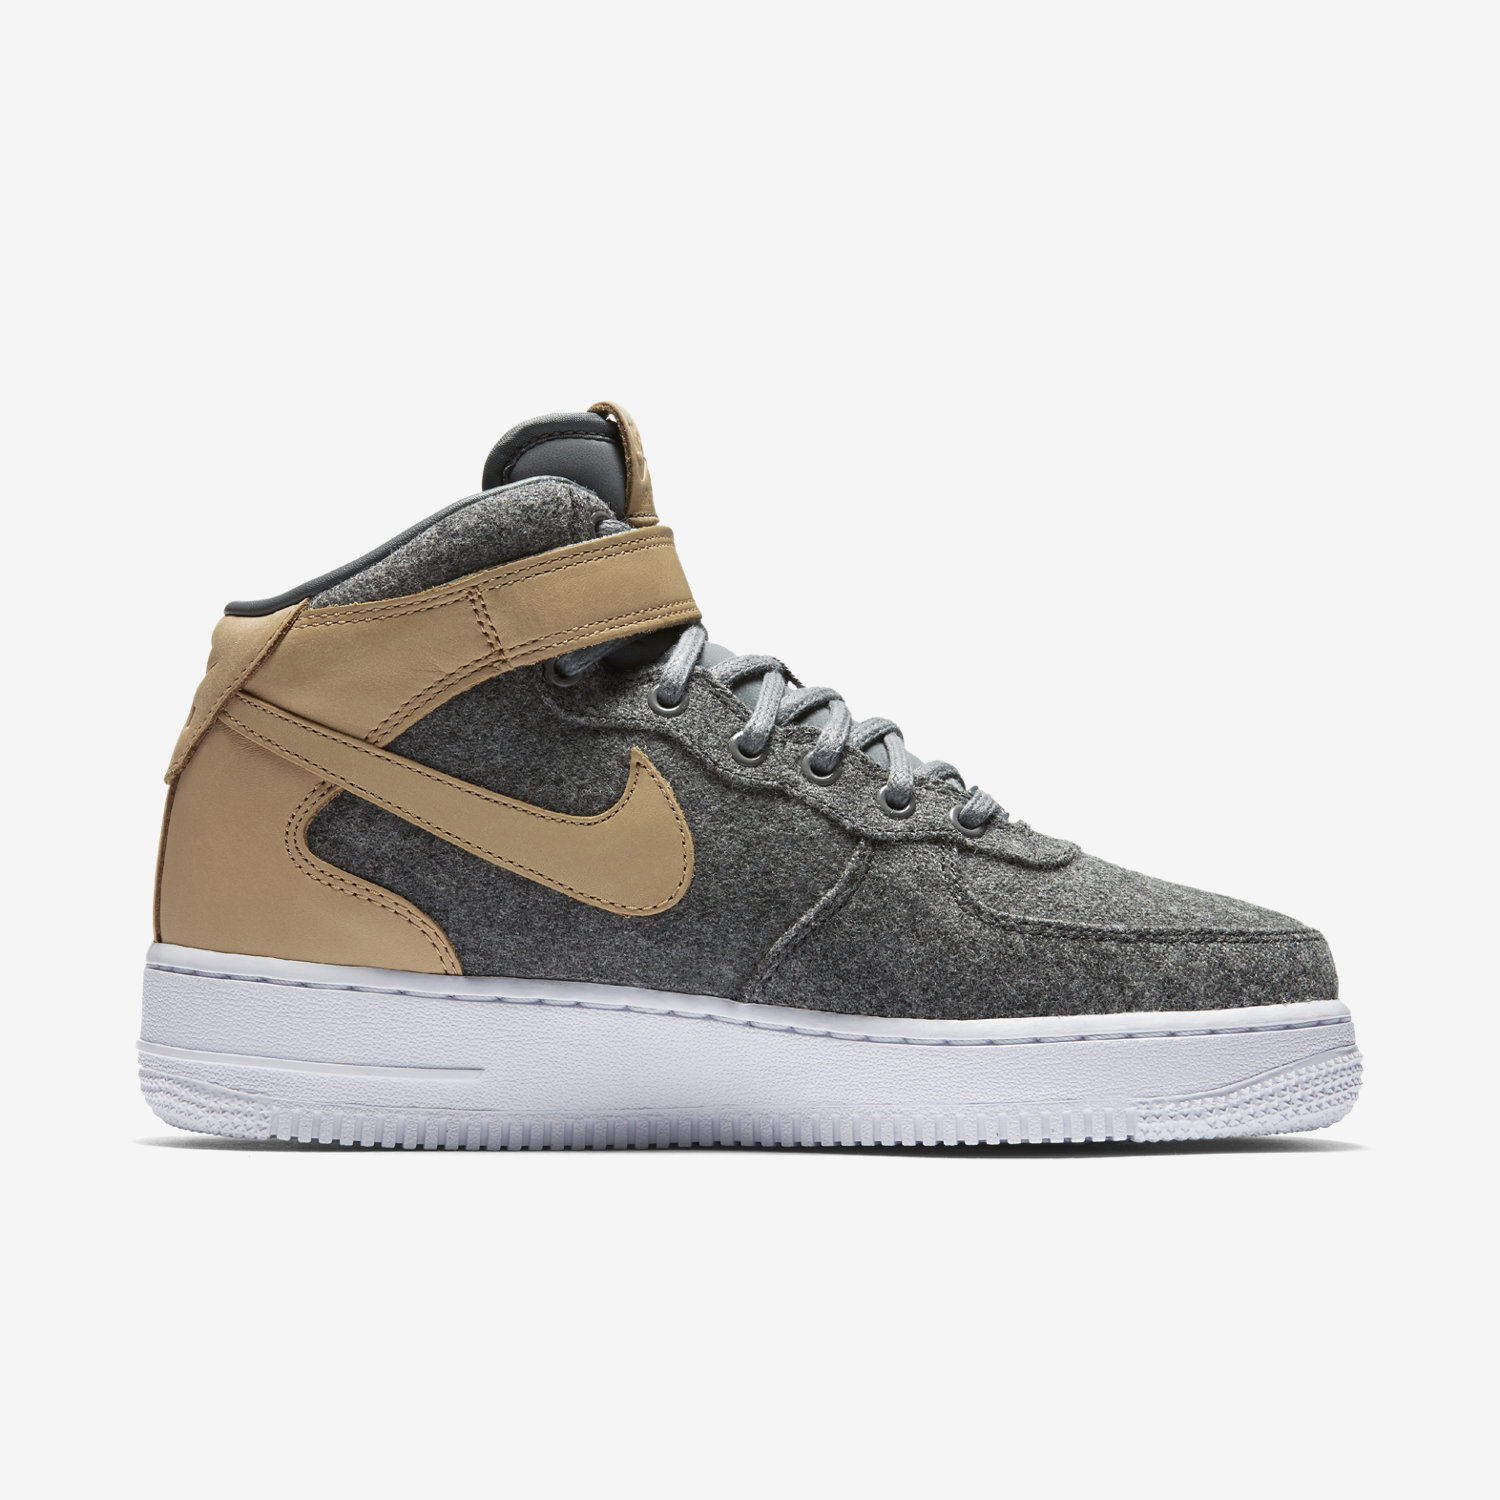 save off authorized site utterly stylish nike air force 1 mid 07 premium beige,Chaussure Nike Air Force 1 ...